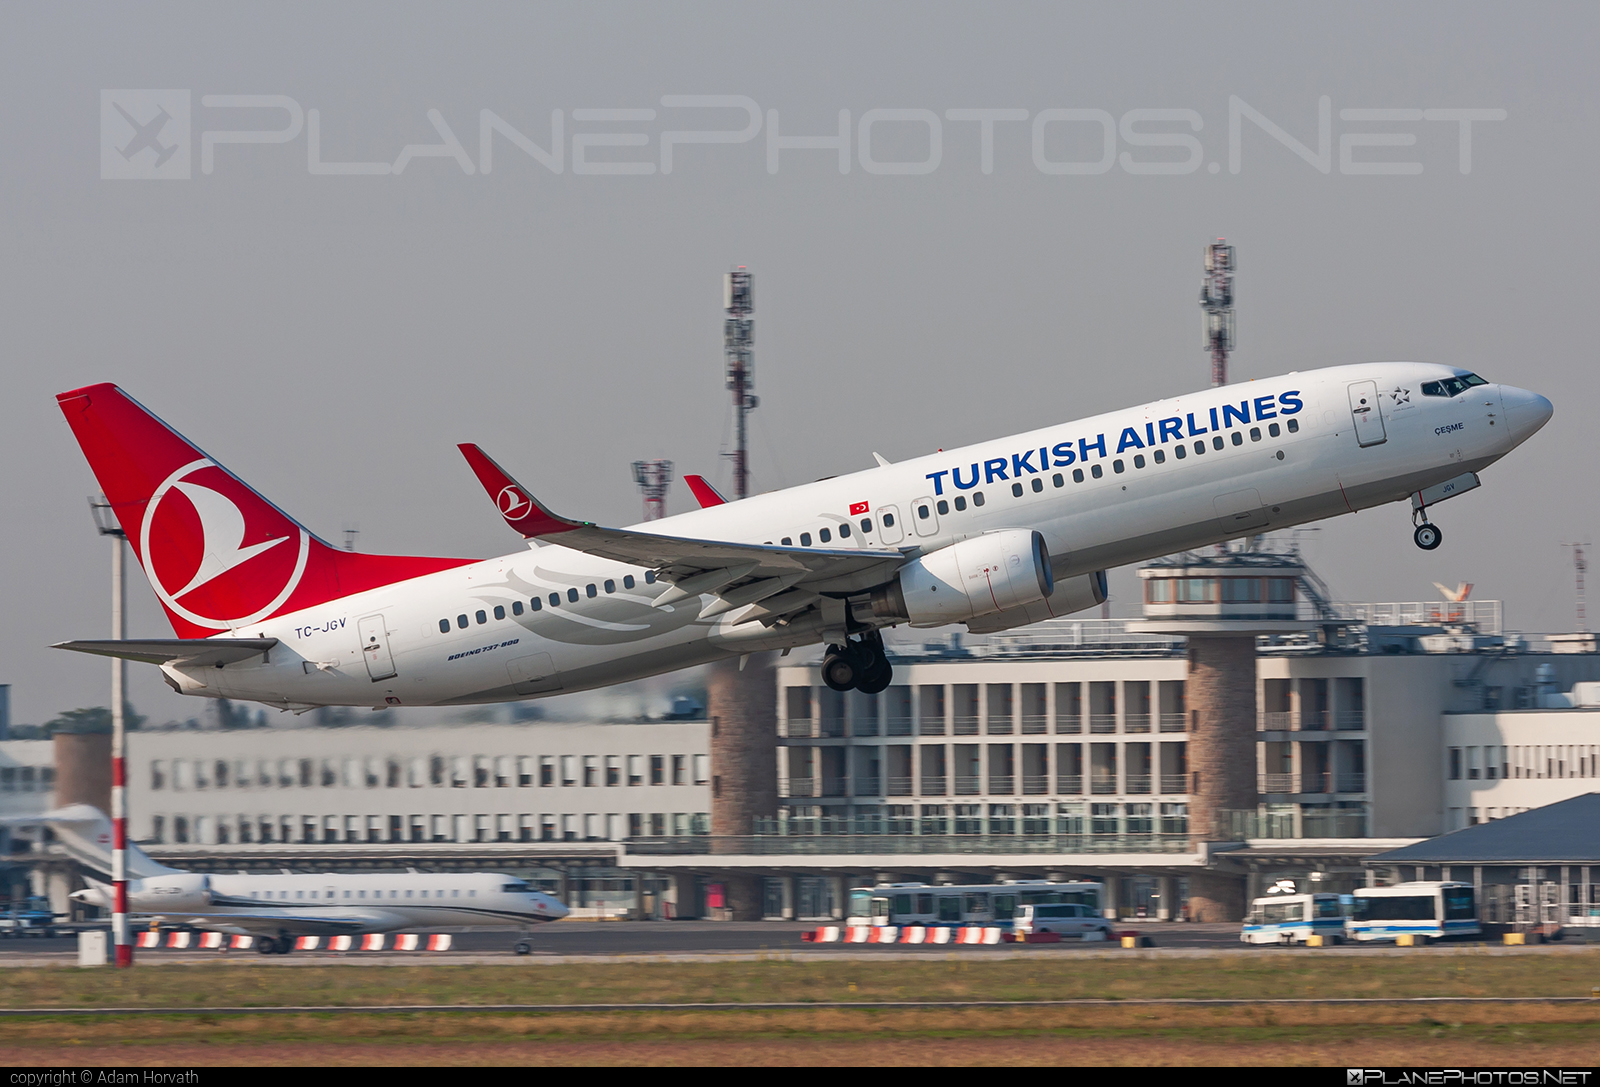 Boeing 737-800 - TC-JGV operated by Turkish Airlines #b737 #b737nextgen #b737ng #boeing #boeing737 #turkishairlines